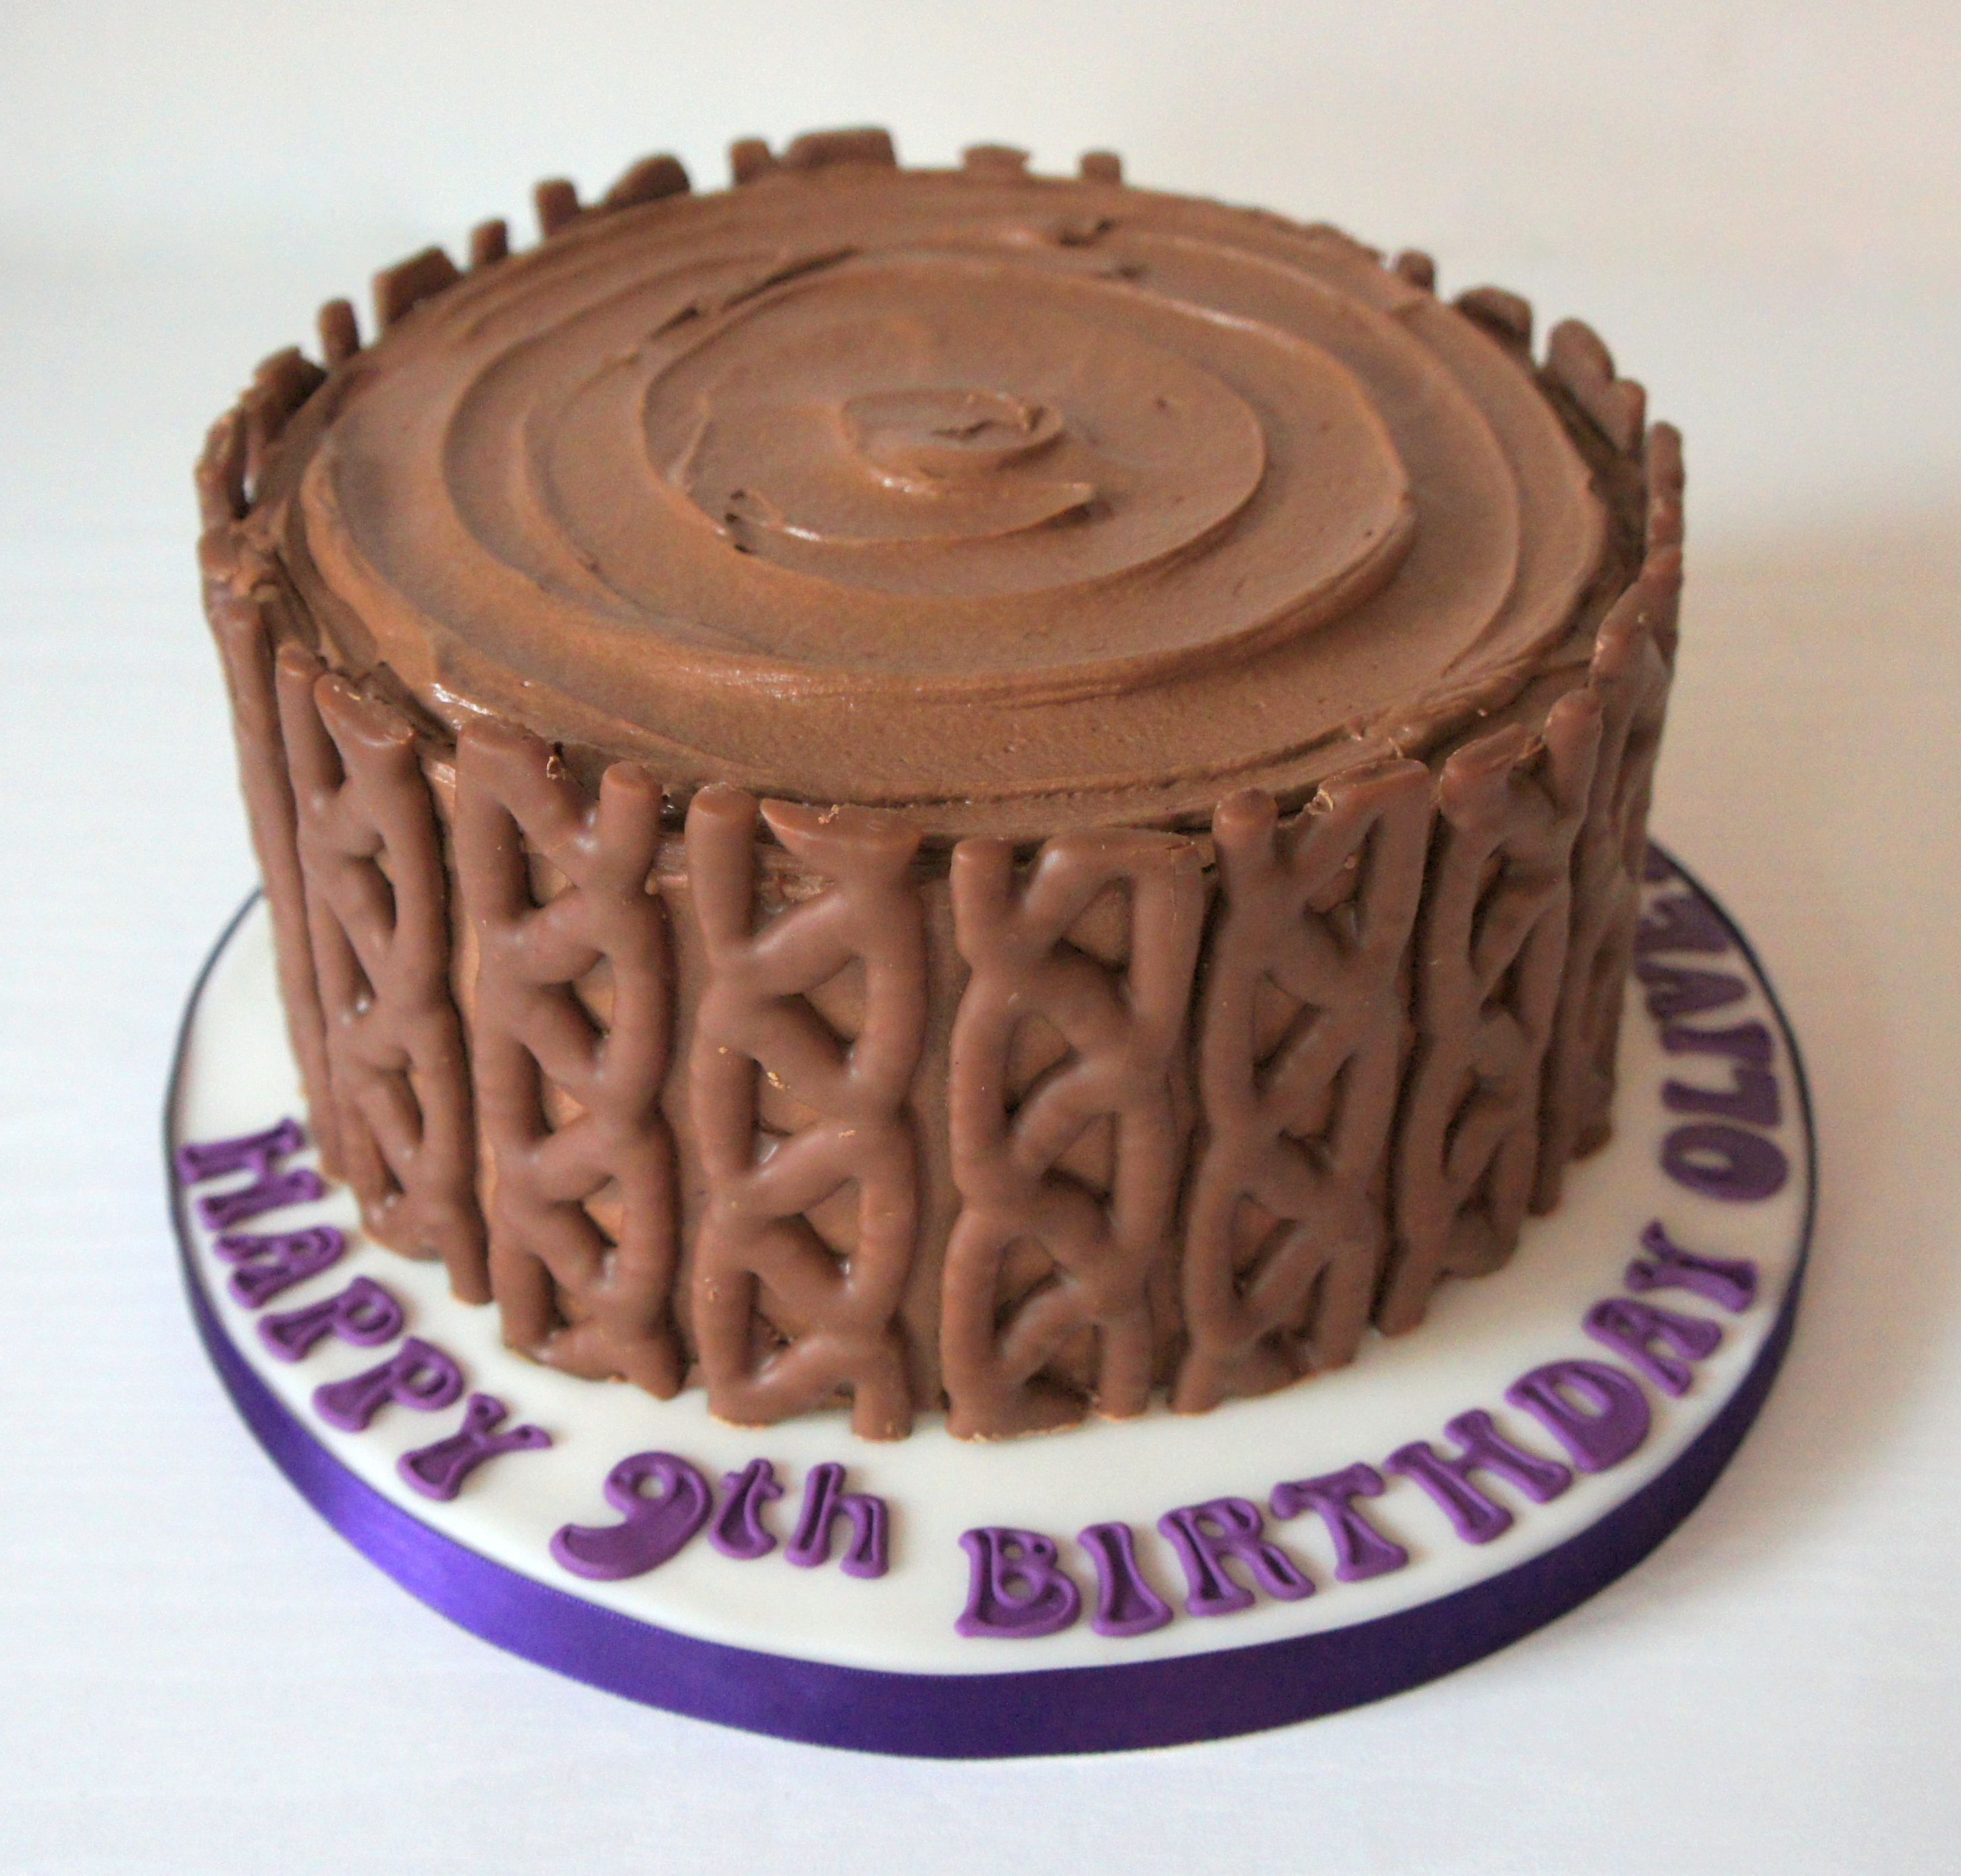 Curly Wurly Birthday Cake